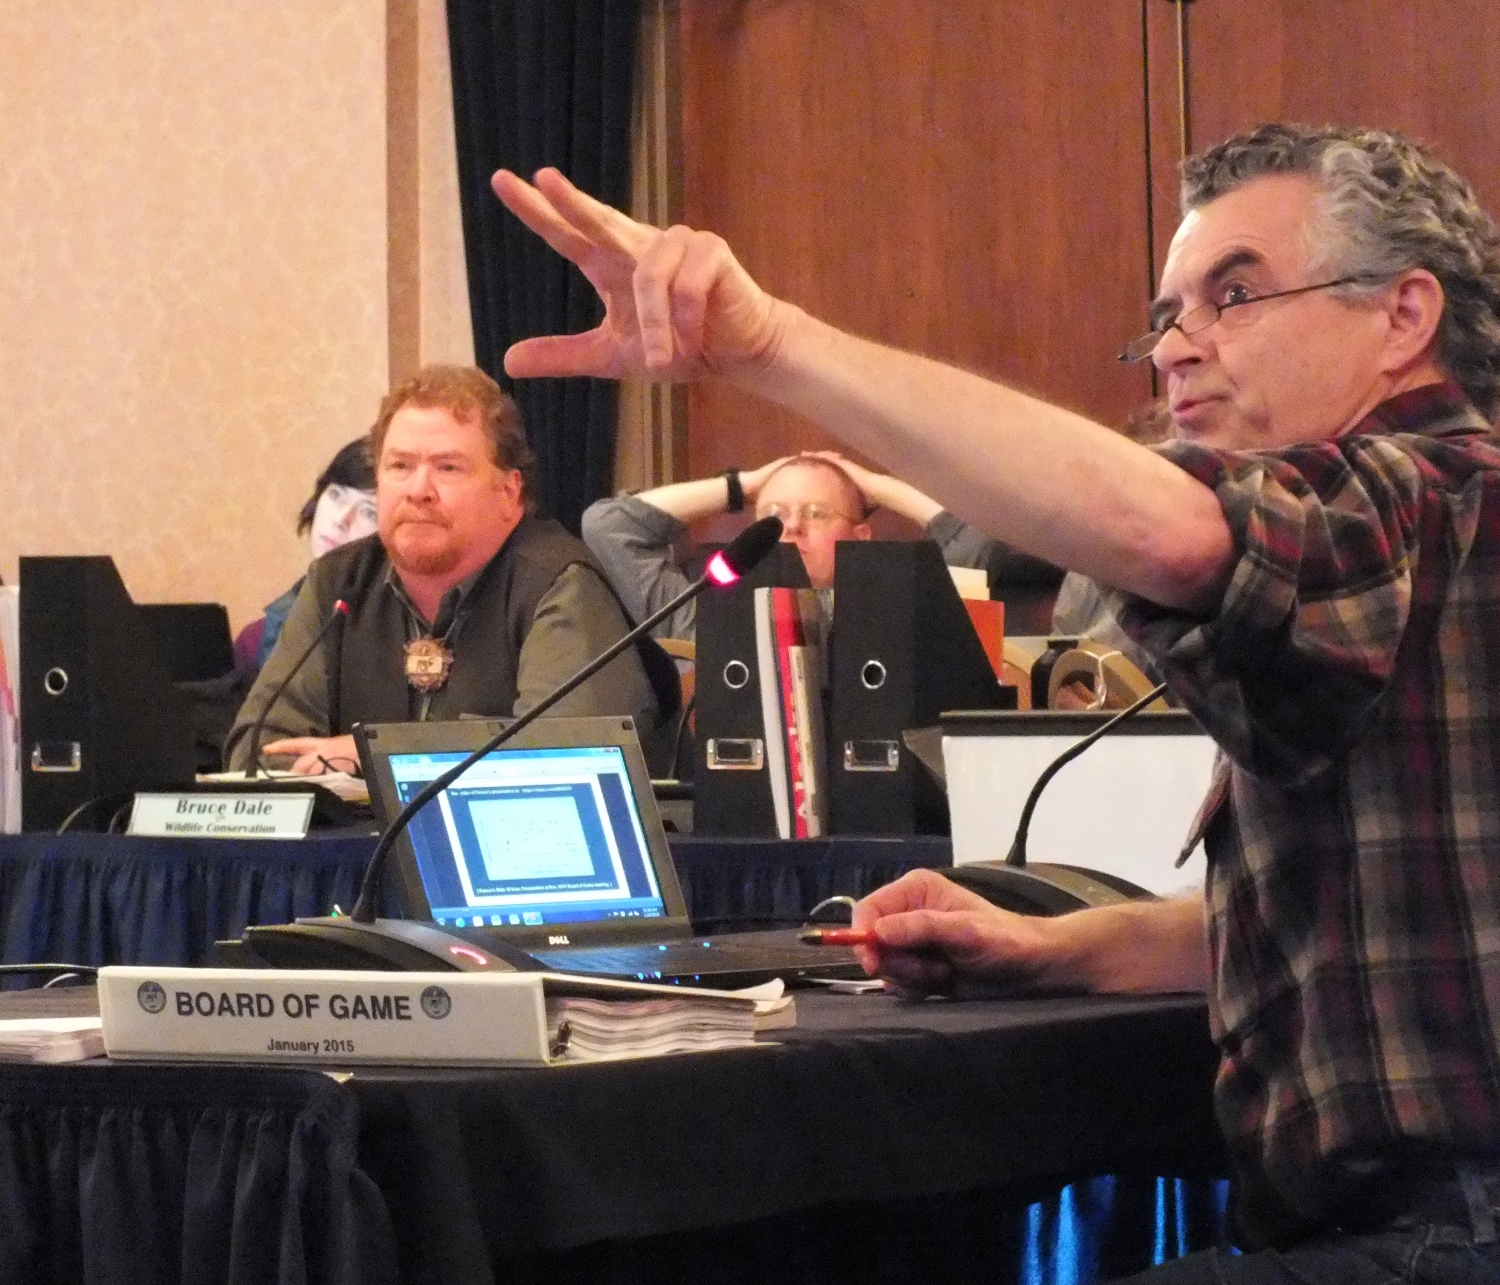 Larry Edwards of Greenpeace (right) points to an overhead projection of a slide while providing testimony on a proposal to limit wolf harvest on Prince of Wales Island as Bruce Dale, acting Director of Division of Wildlife Conservation, listens during the Board of Game's meeting in Juneau on Jan. 9, 2015. (Photo by Matt Miller/KTOO)